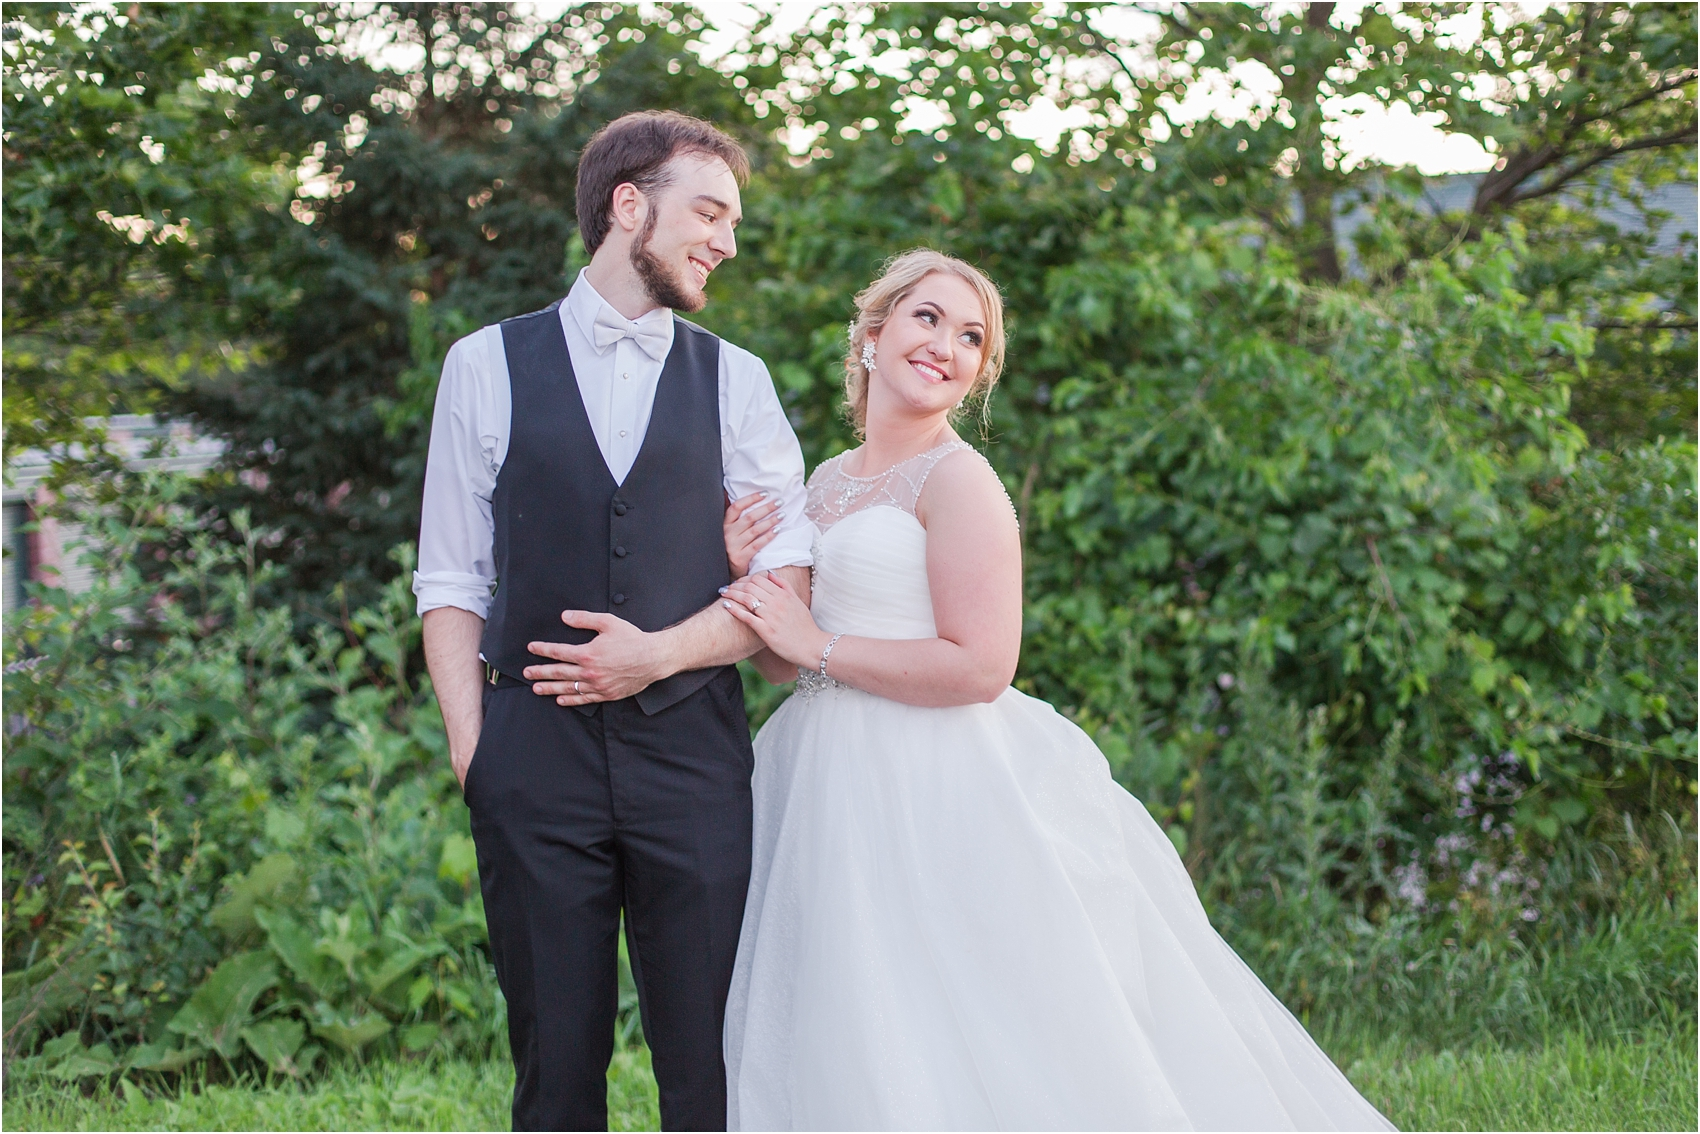 lord-of-the-rings-inspired-wedding-photos-at-crystal-gardens-in-howell-mi-by-courtney-carolyn-photography_0128.jpg